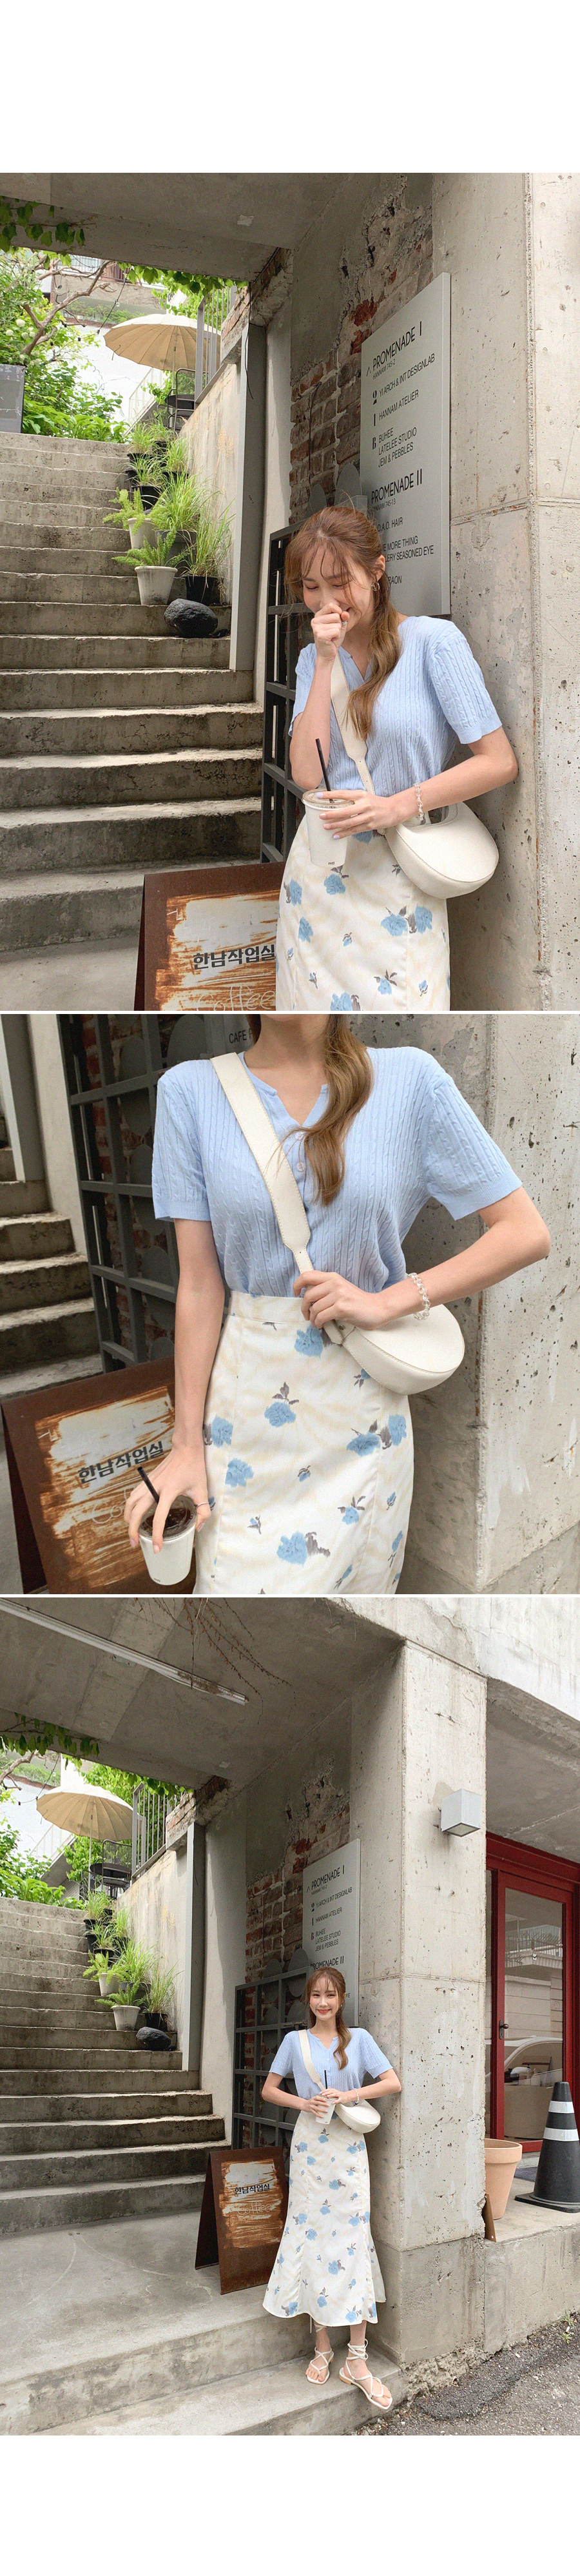 One-day short-sleeved cardigan